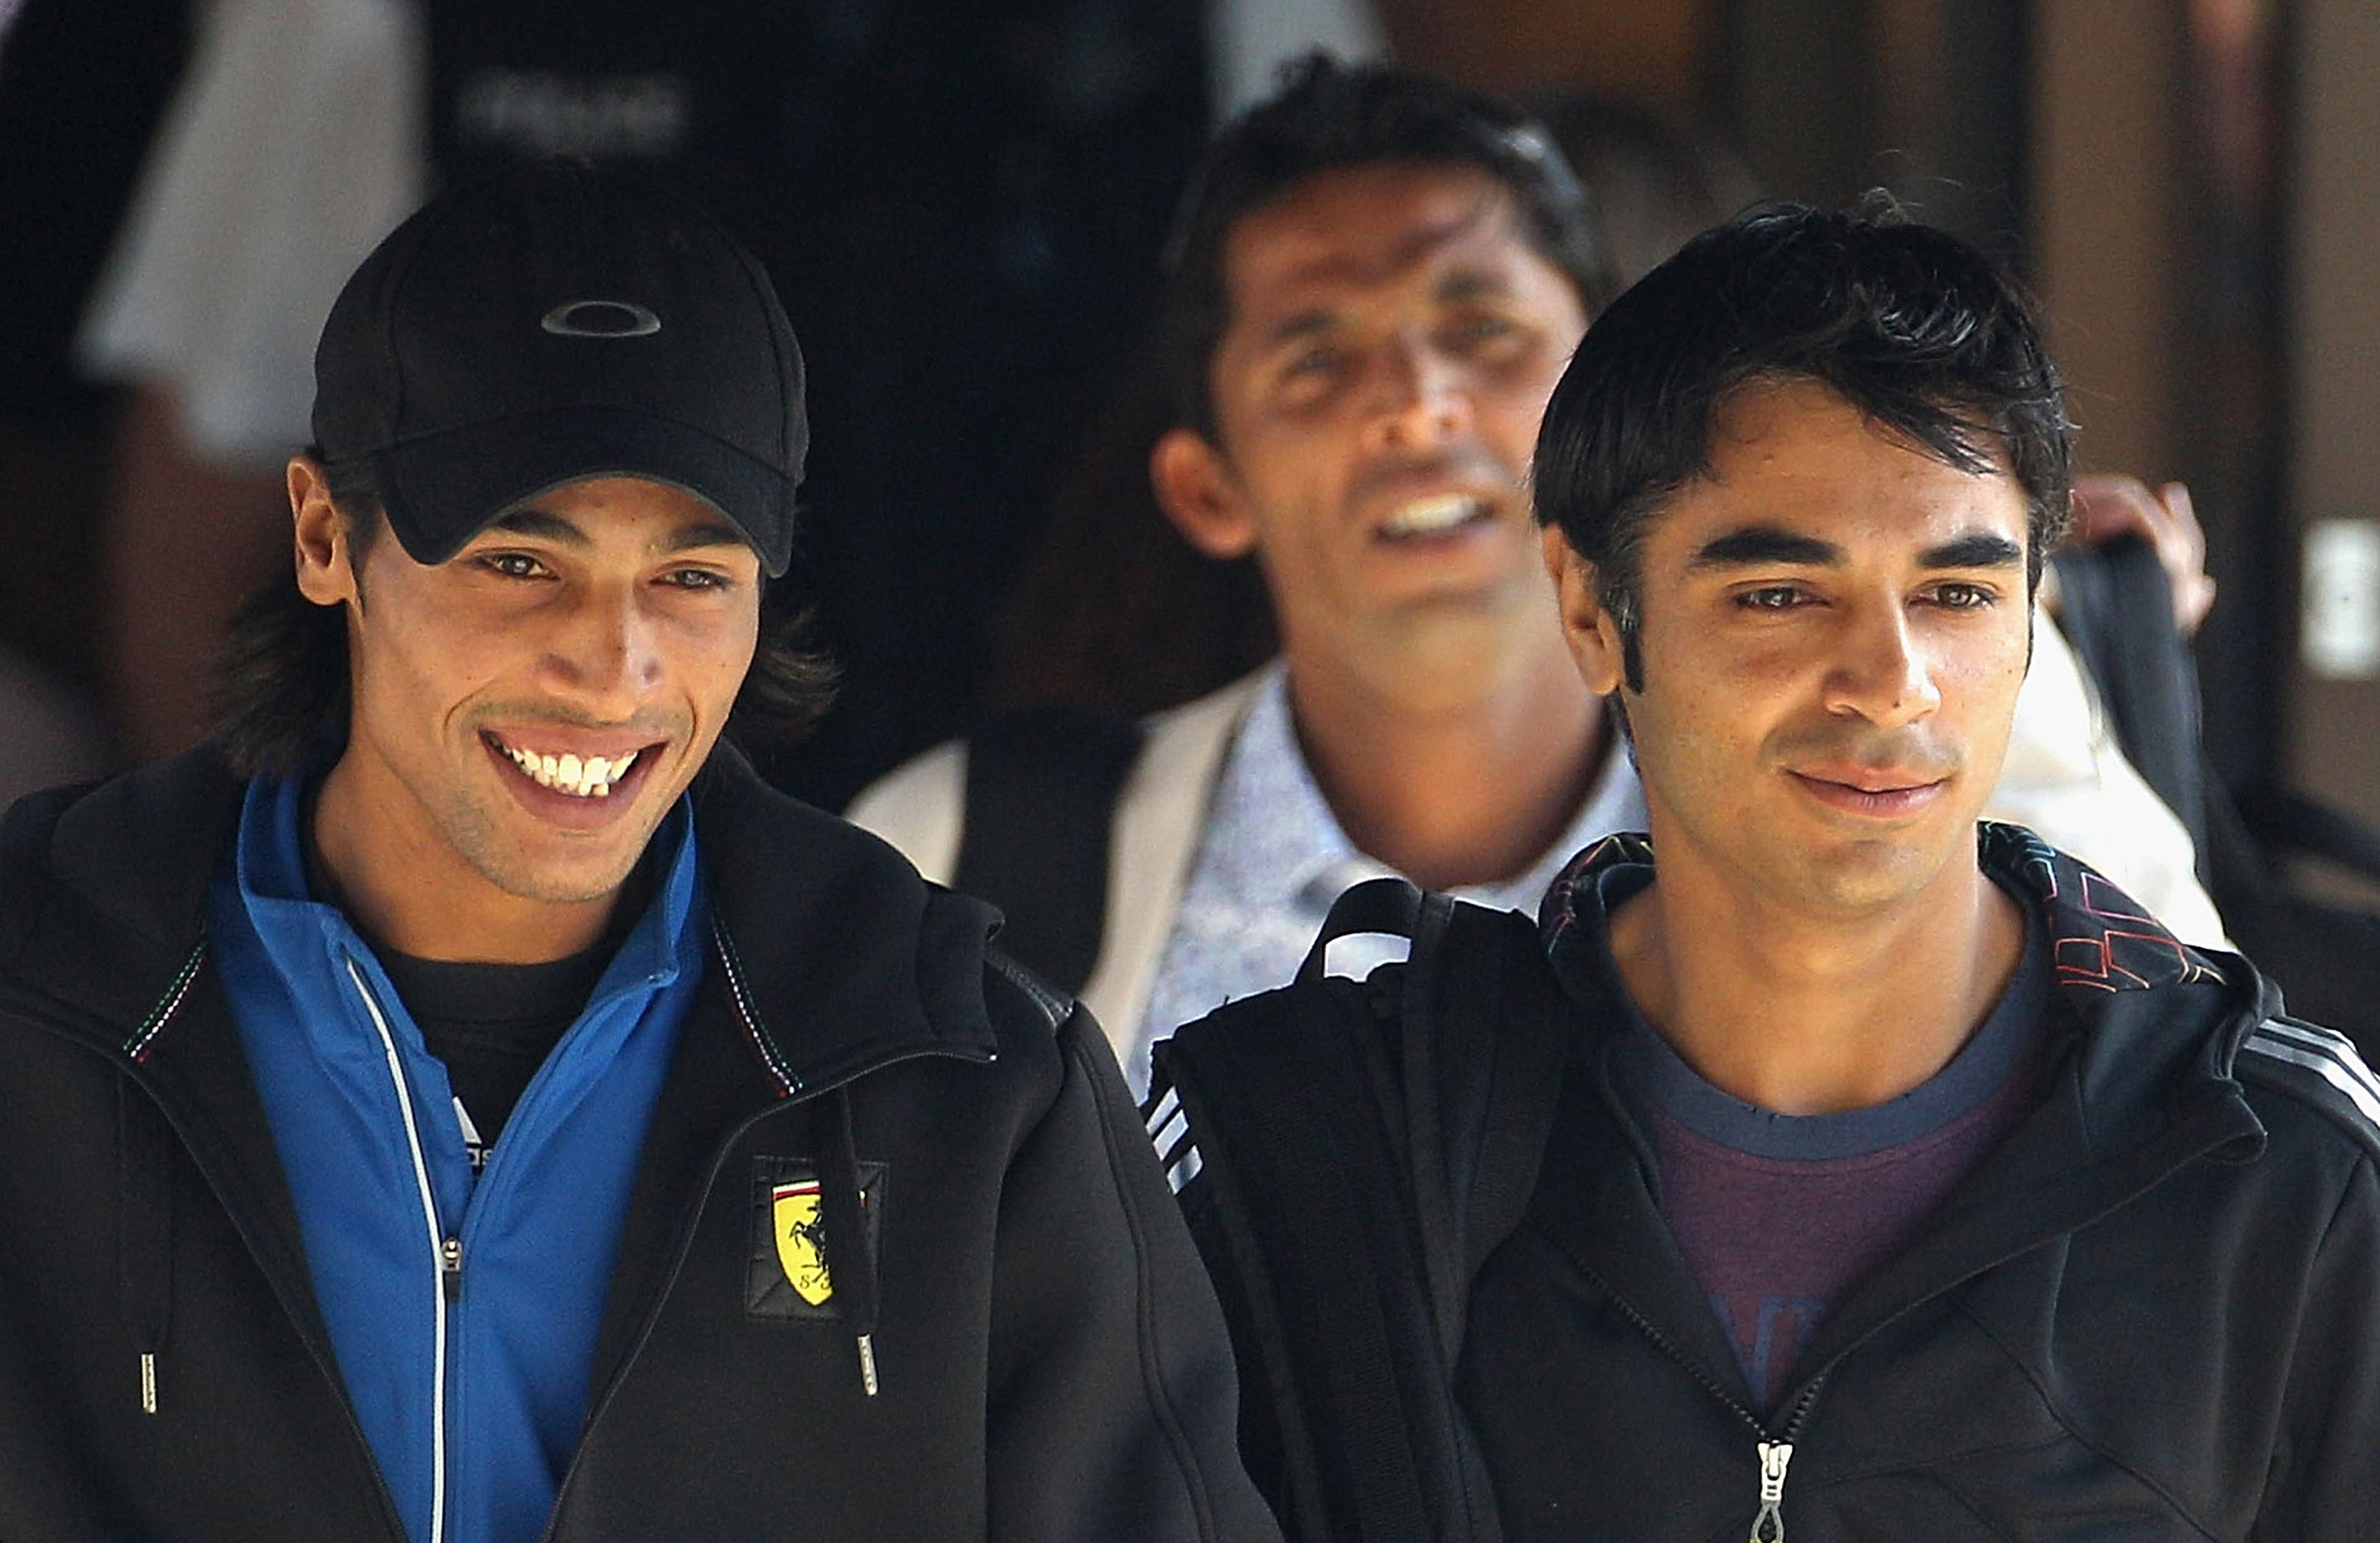 Mohammad Amir (l) and Butt (r) were convicted of spot-fixing in 2010 // Getty